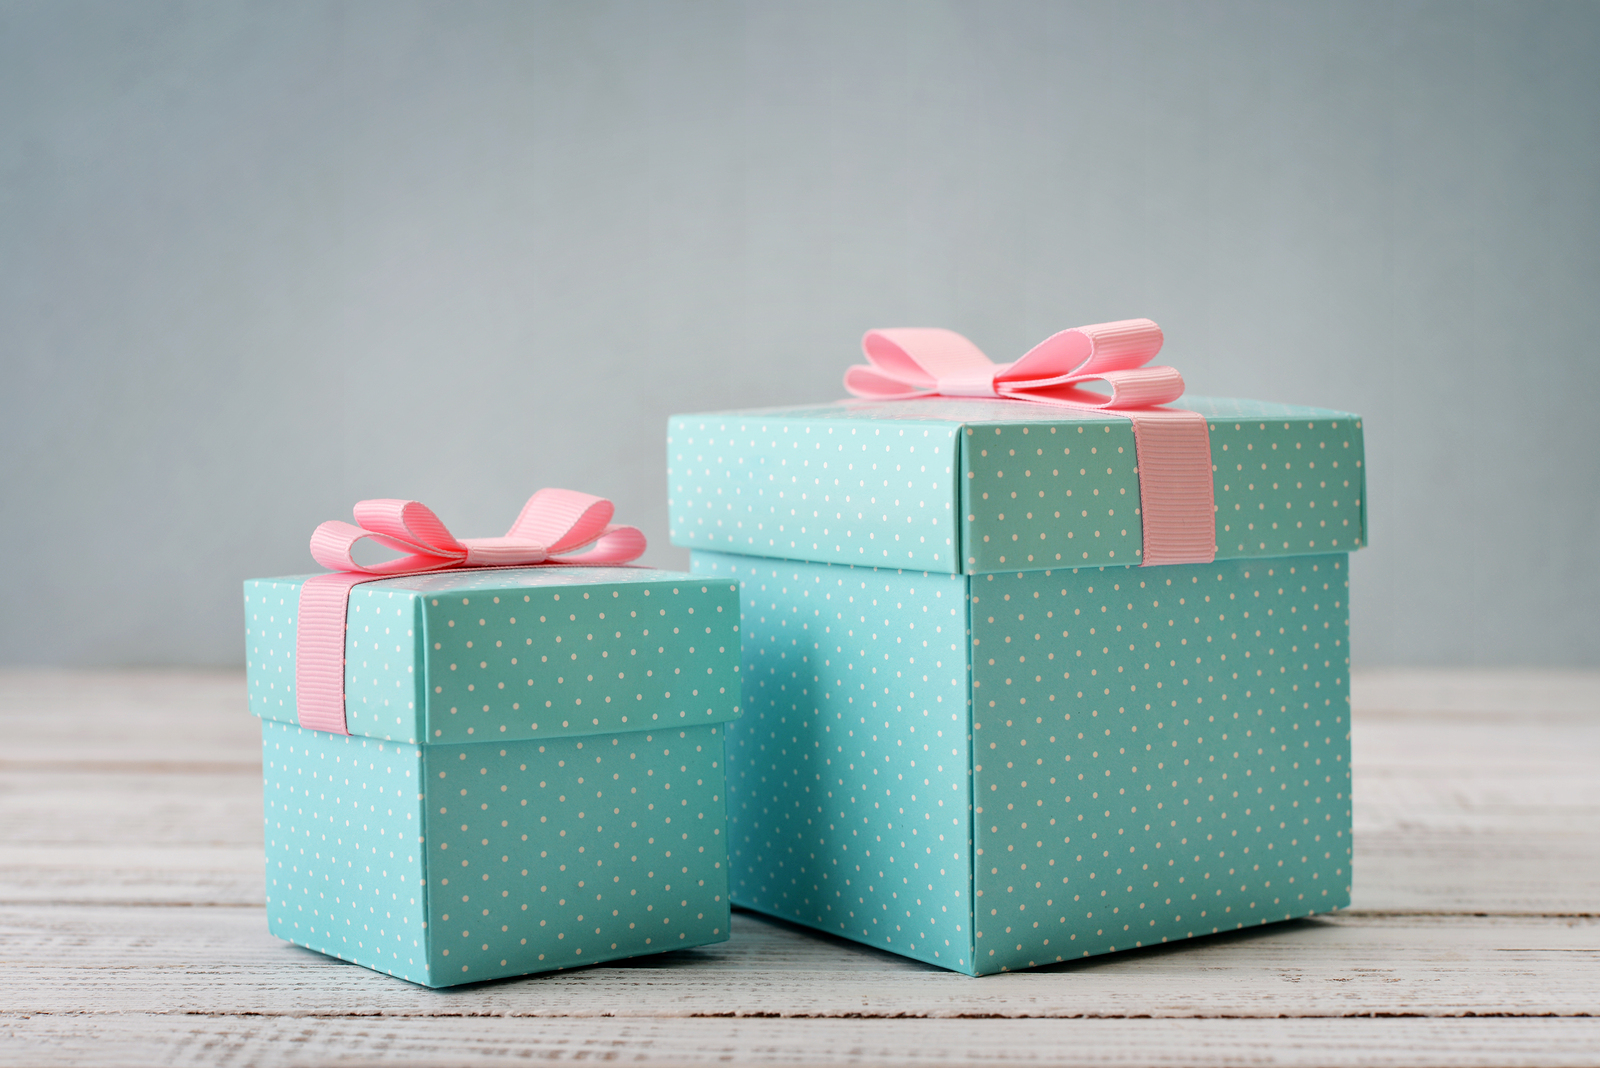 Blue polka dots gift boxes with pink ribbons on wooden background